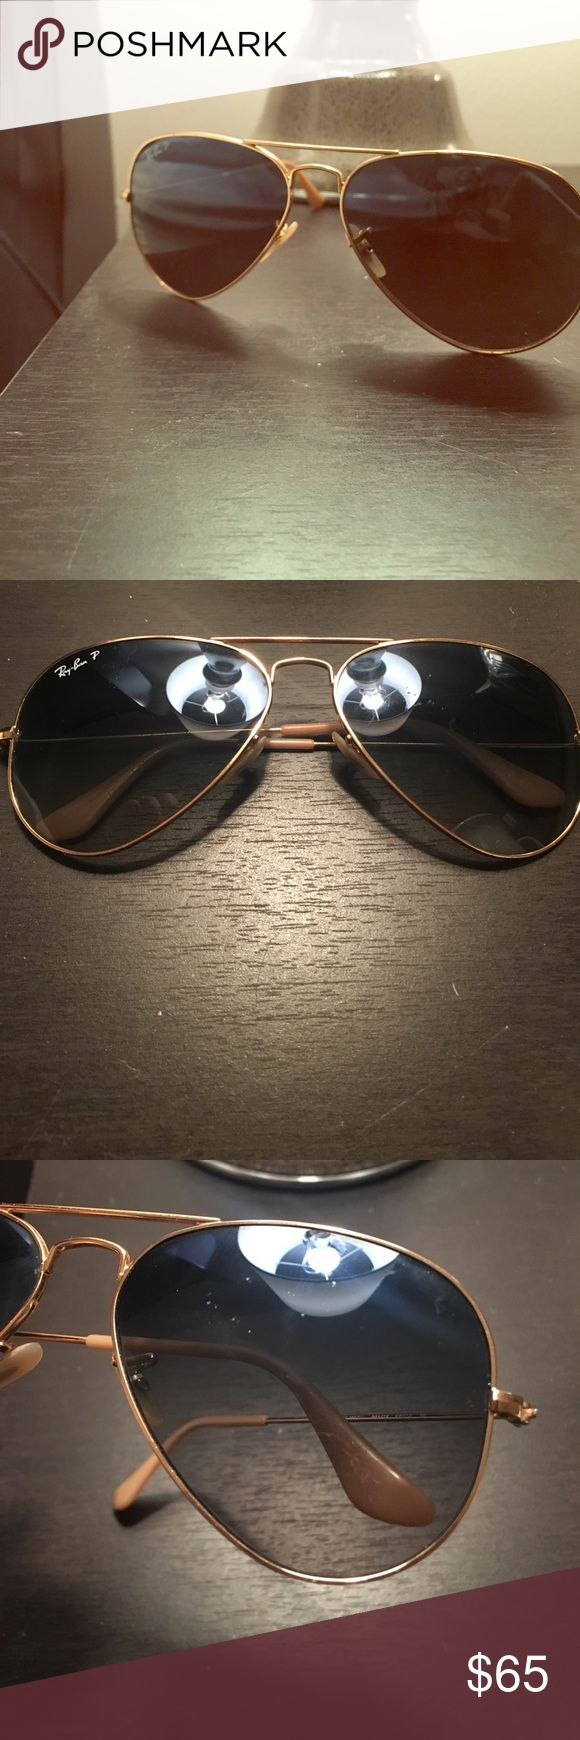 Blue aviator Polarized Ray Bans Great condition! Only a few minor scratches as shown in photos. Ray Bans Accessories Sunglasses